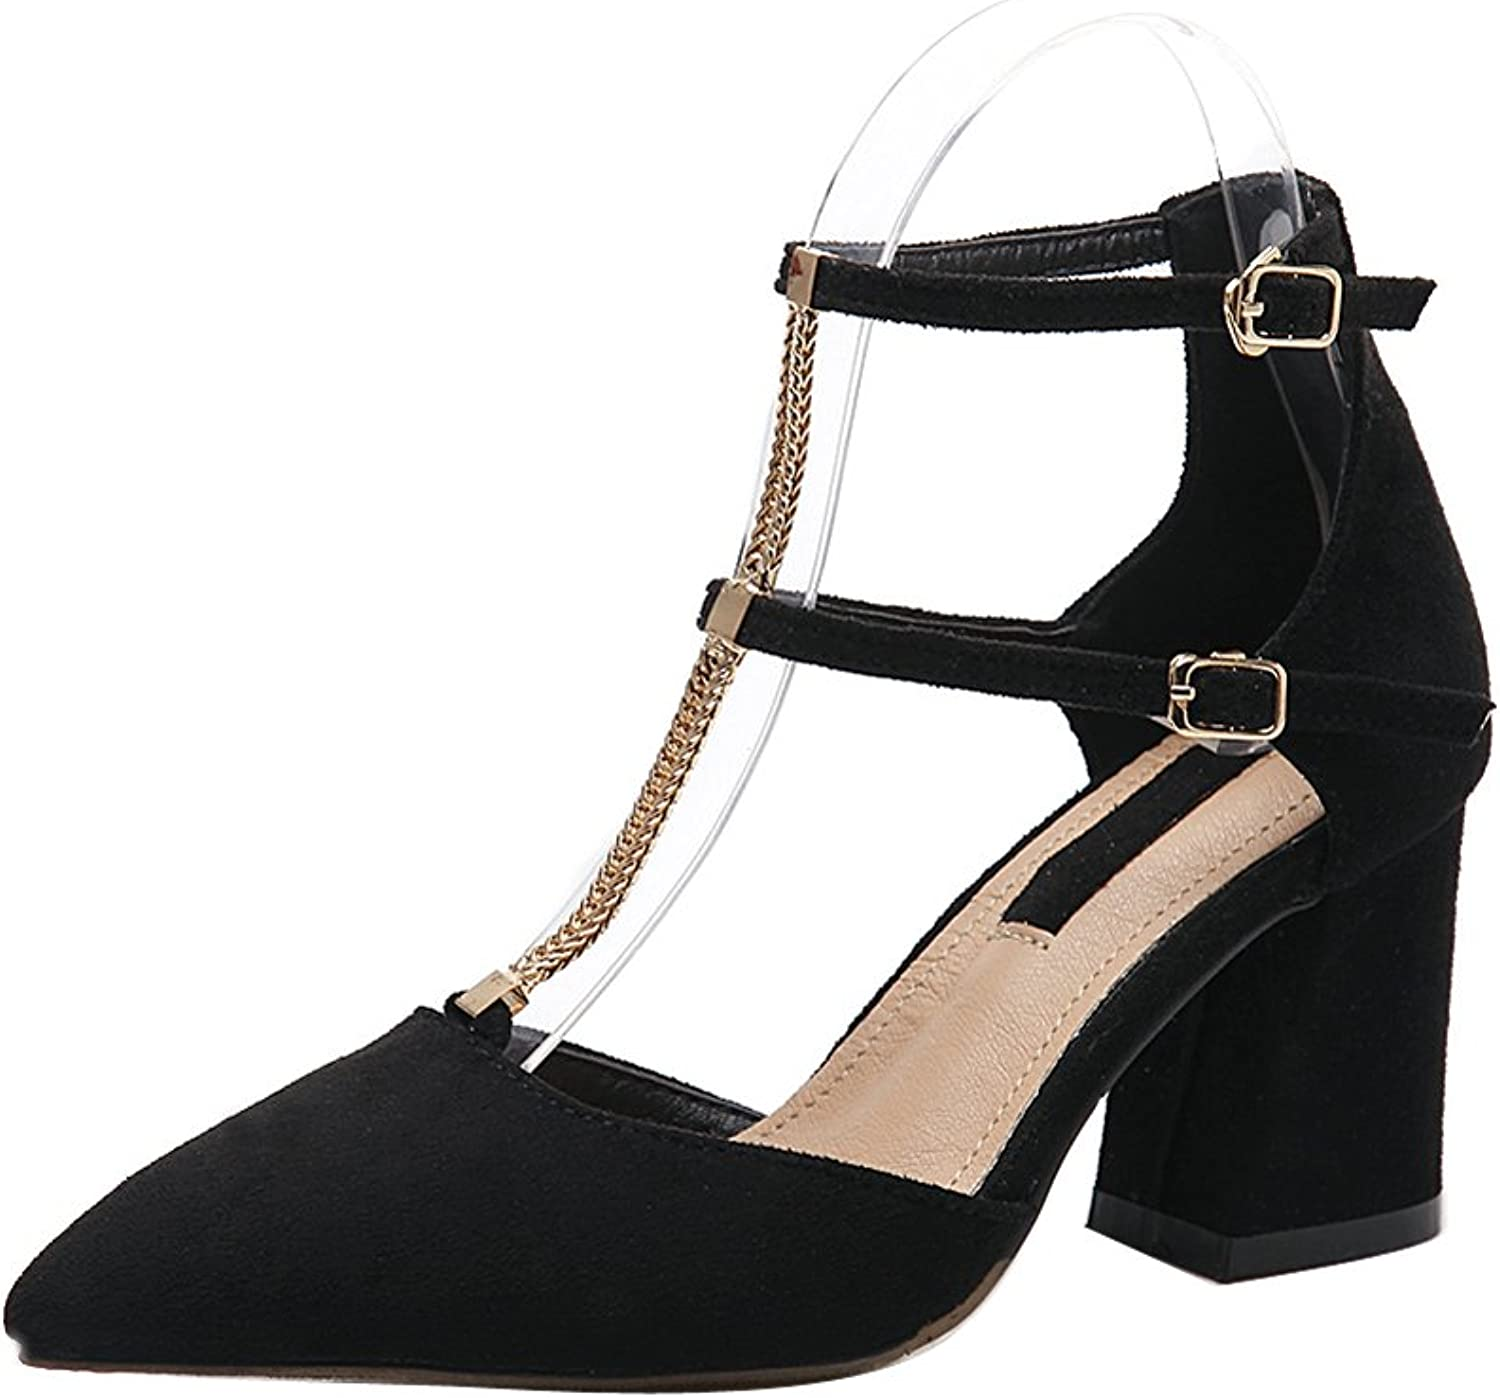 1TO9 Womens Adjustable-Strap Suede Pointed-Toe Black Suede Pumps shoes - 5 B(M) US